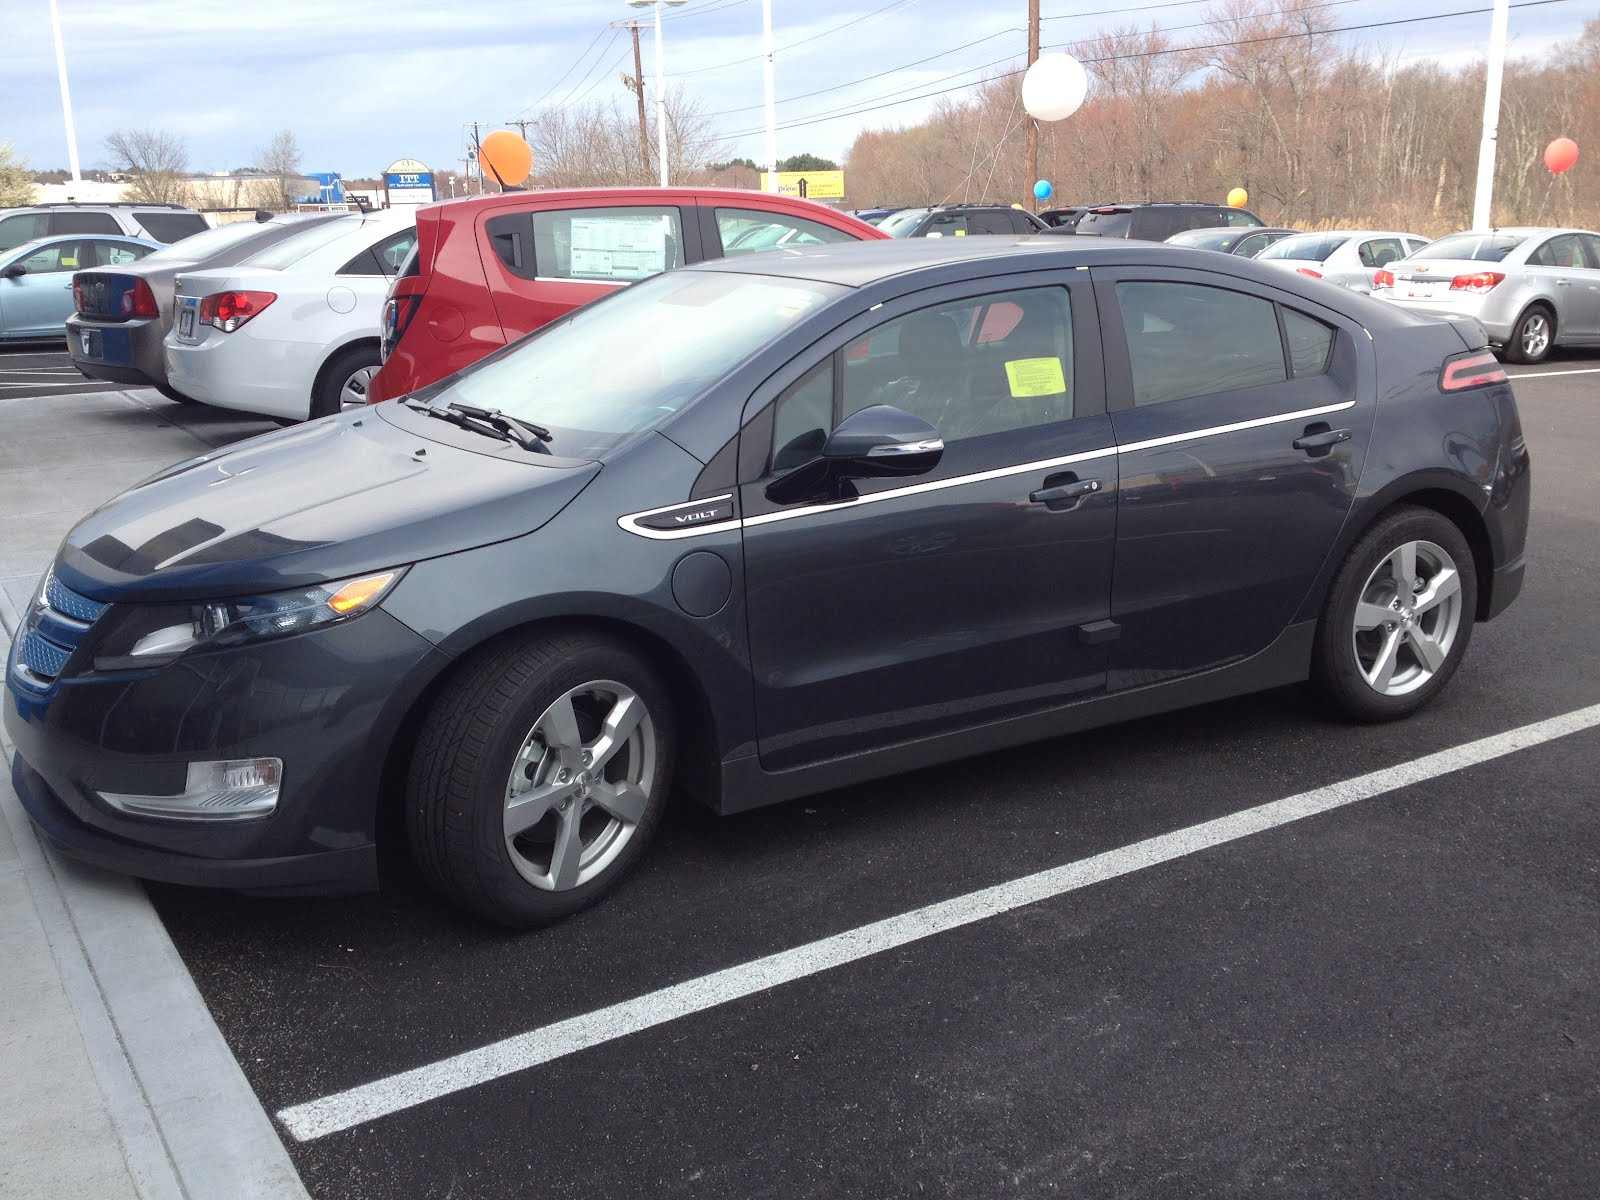 Left Bank Of The Charles My First Volt May Be A Zipcar Chevy Gas 20th Year And I Am Starting To Think About Getting Replace It Off Clay Chevrolet On Auto Mile In Norwood Time For Test Drive